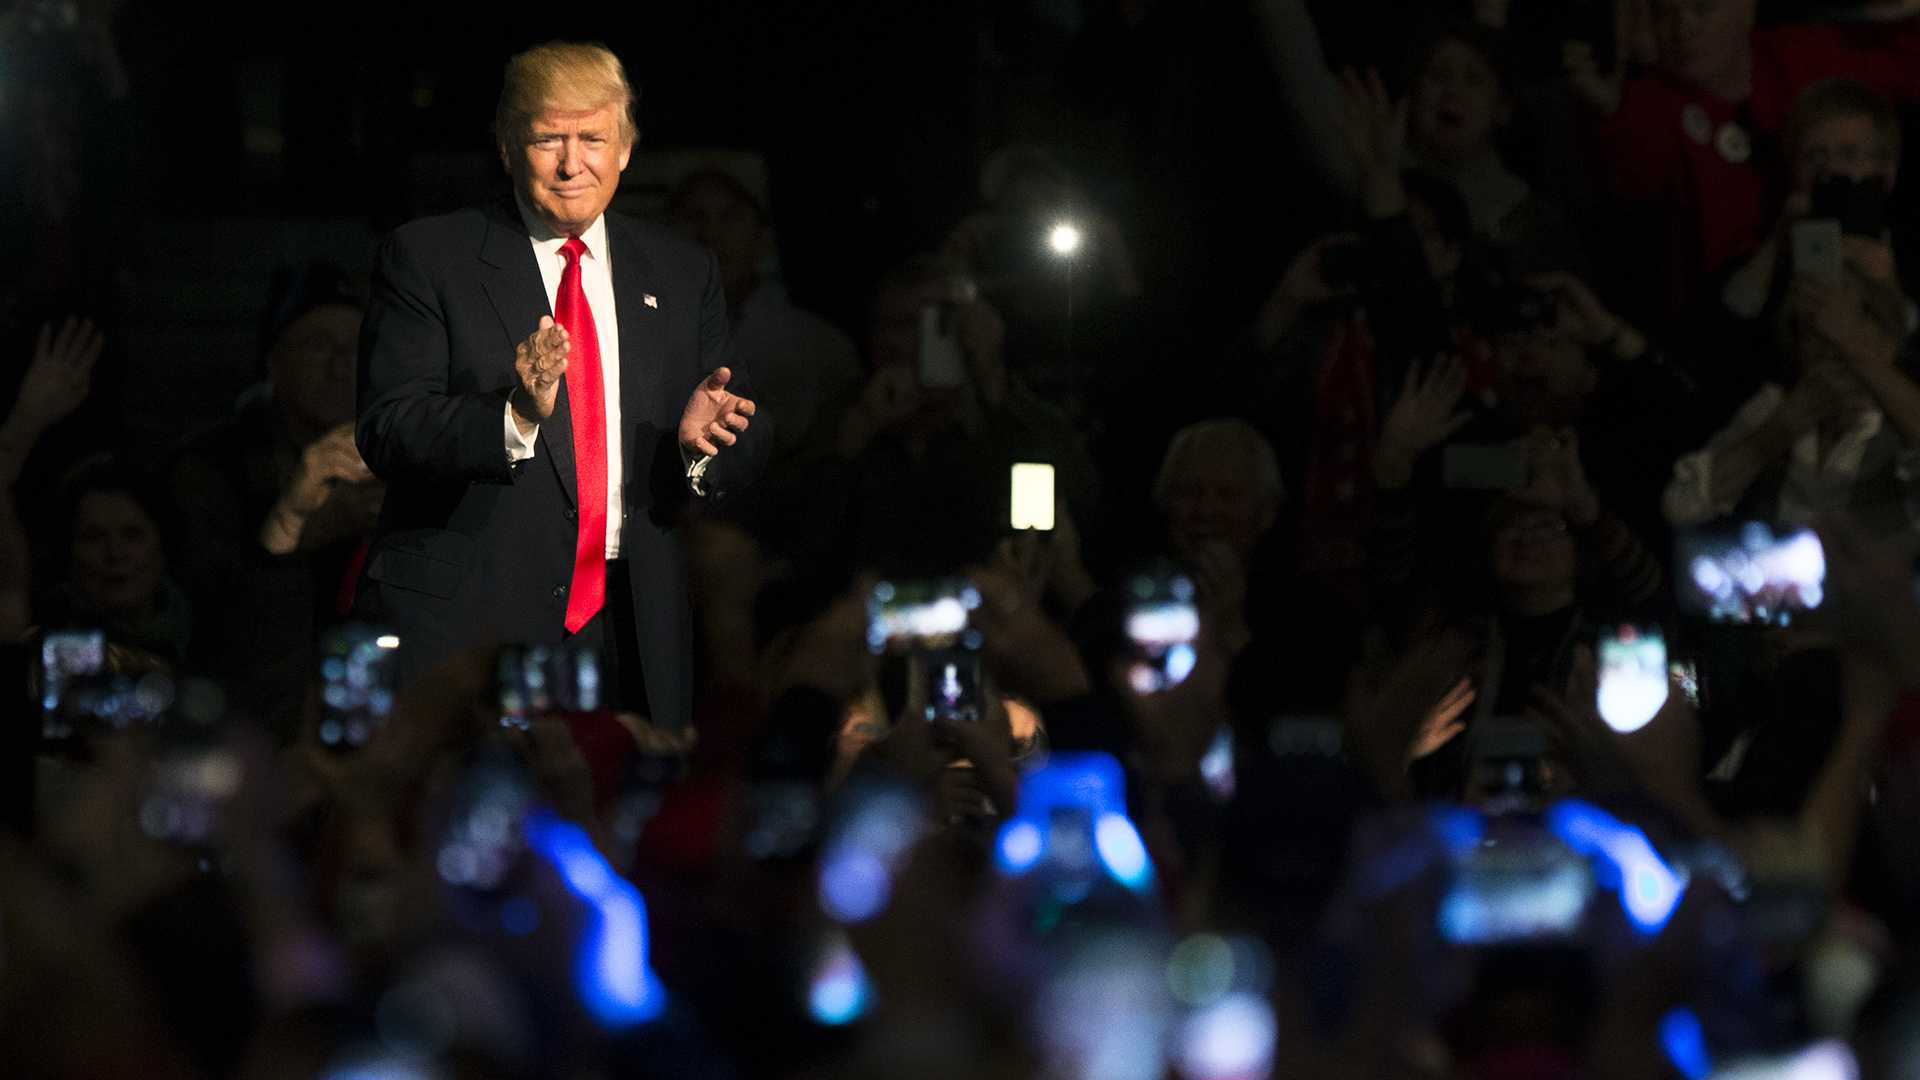 President-Elect Donald Trump thanks fans while making his entrance during an event for Trump and Vice President-Elect Mike Pence in Des Moines on Thursday, Dec. 8, 2016. (The Daily Iowan/Joseph Cress)